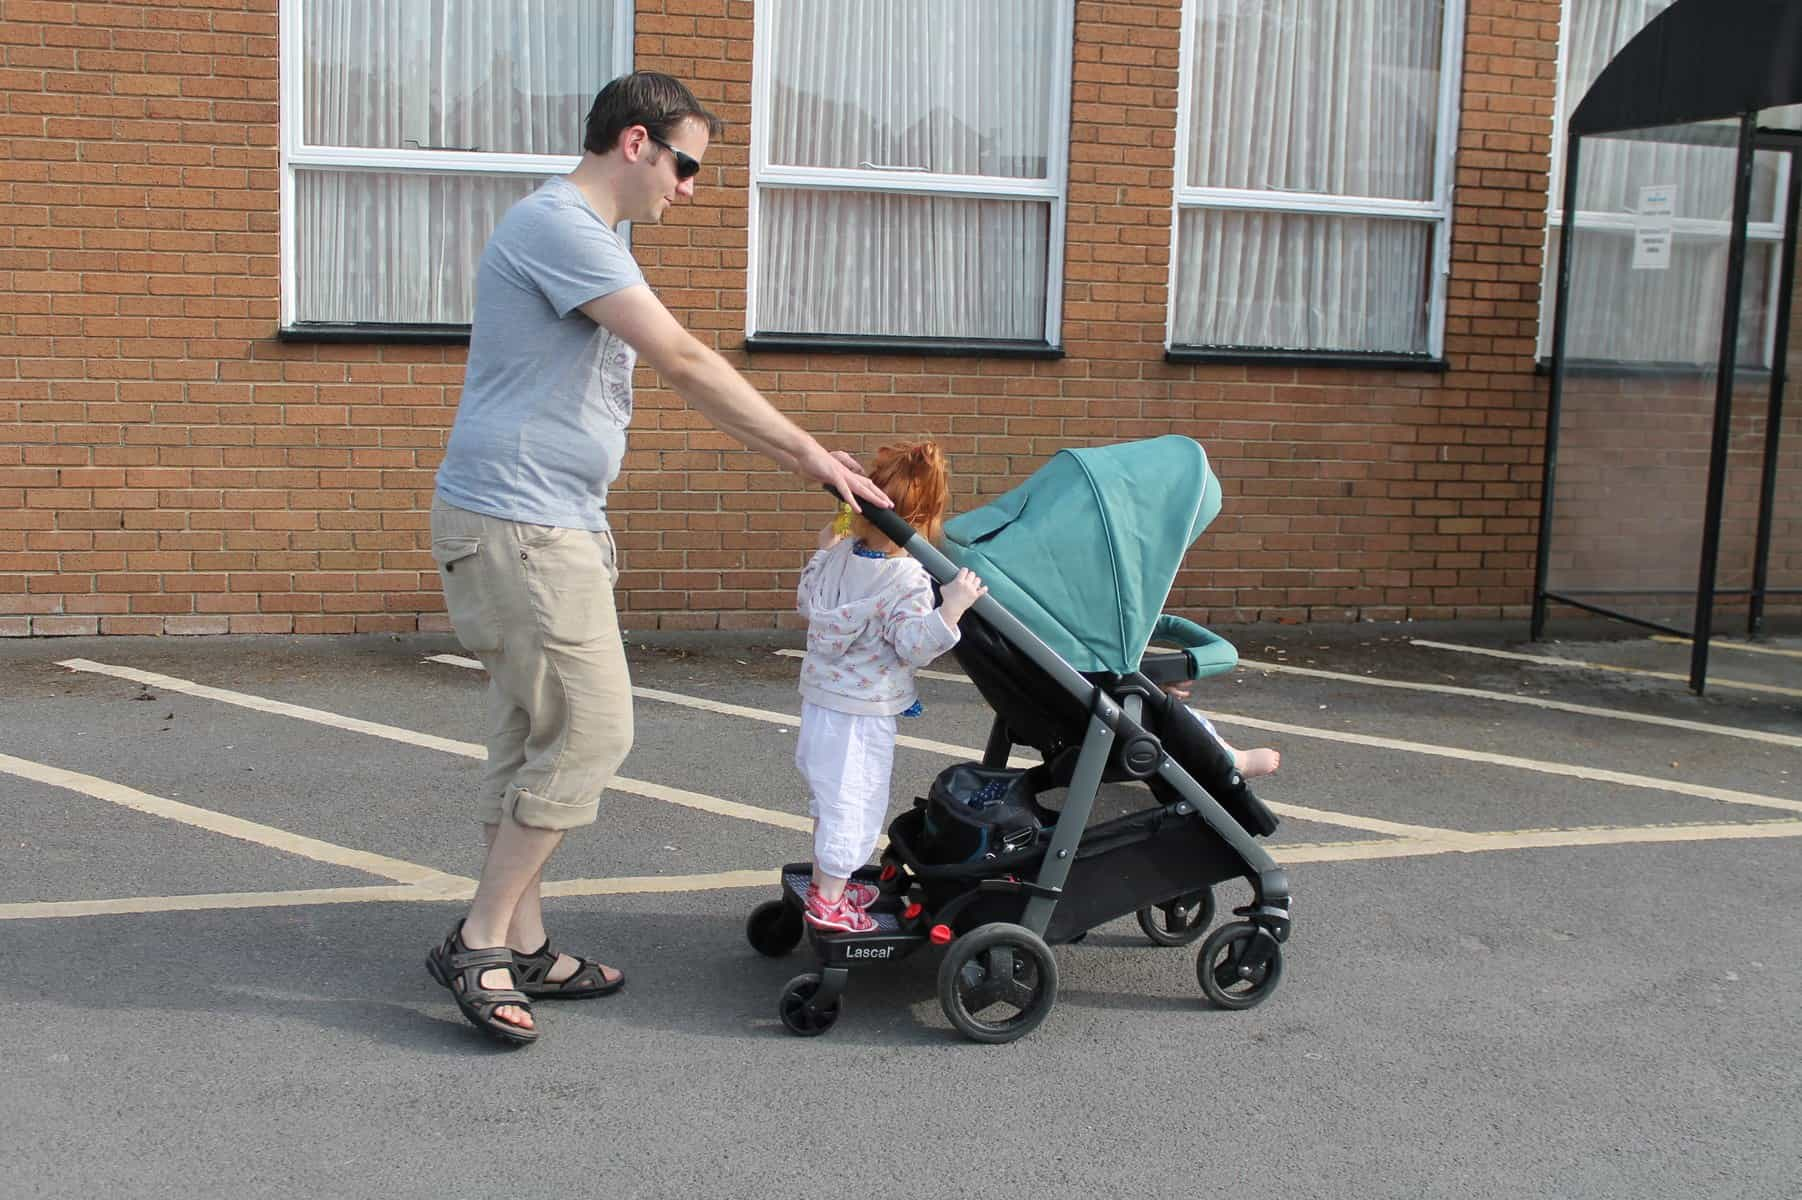 Review: Lascal Buggy Board Maxi